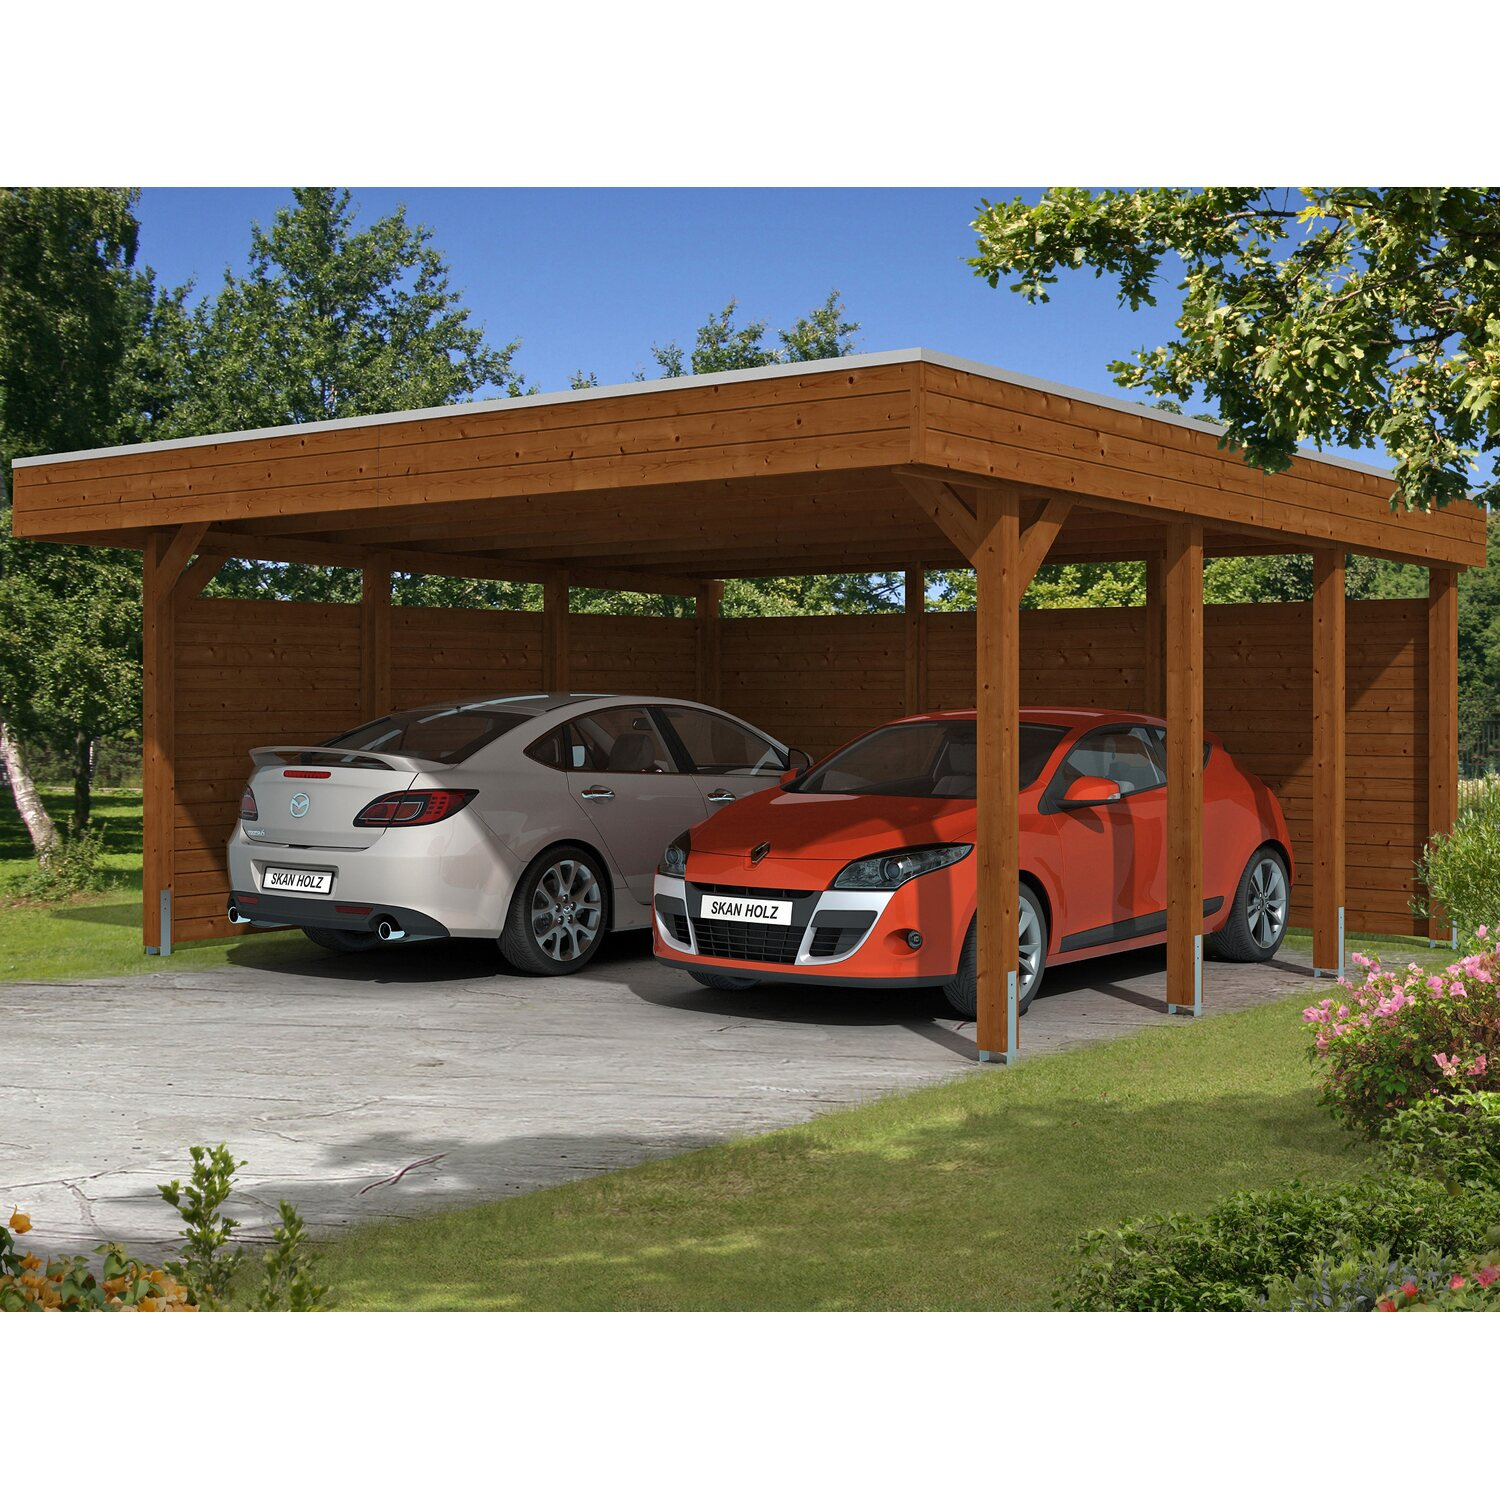 skan holz carport friesland set 3 557 cm x 555 cm nussbaum kaufen bei obi. Black Bedroom Furniture Sets. Home Design Ideas